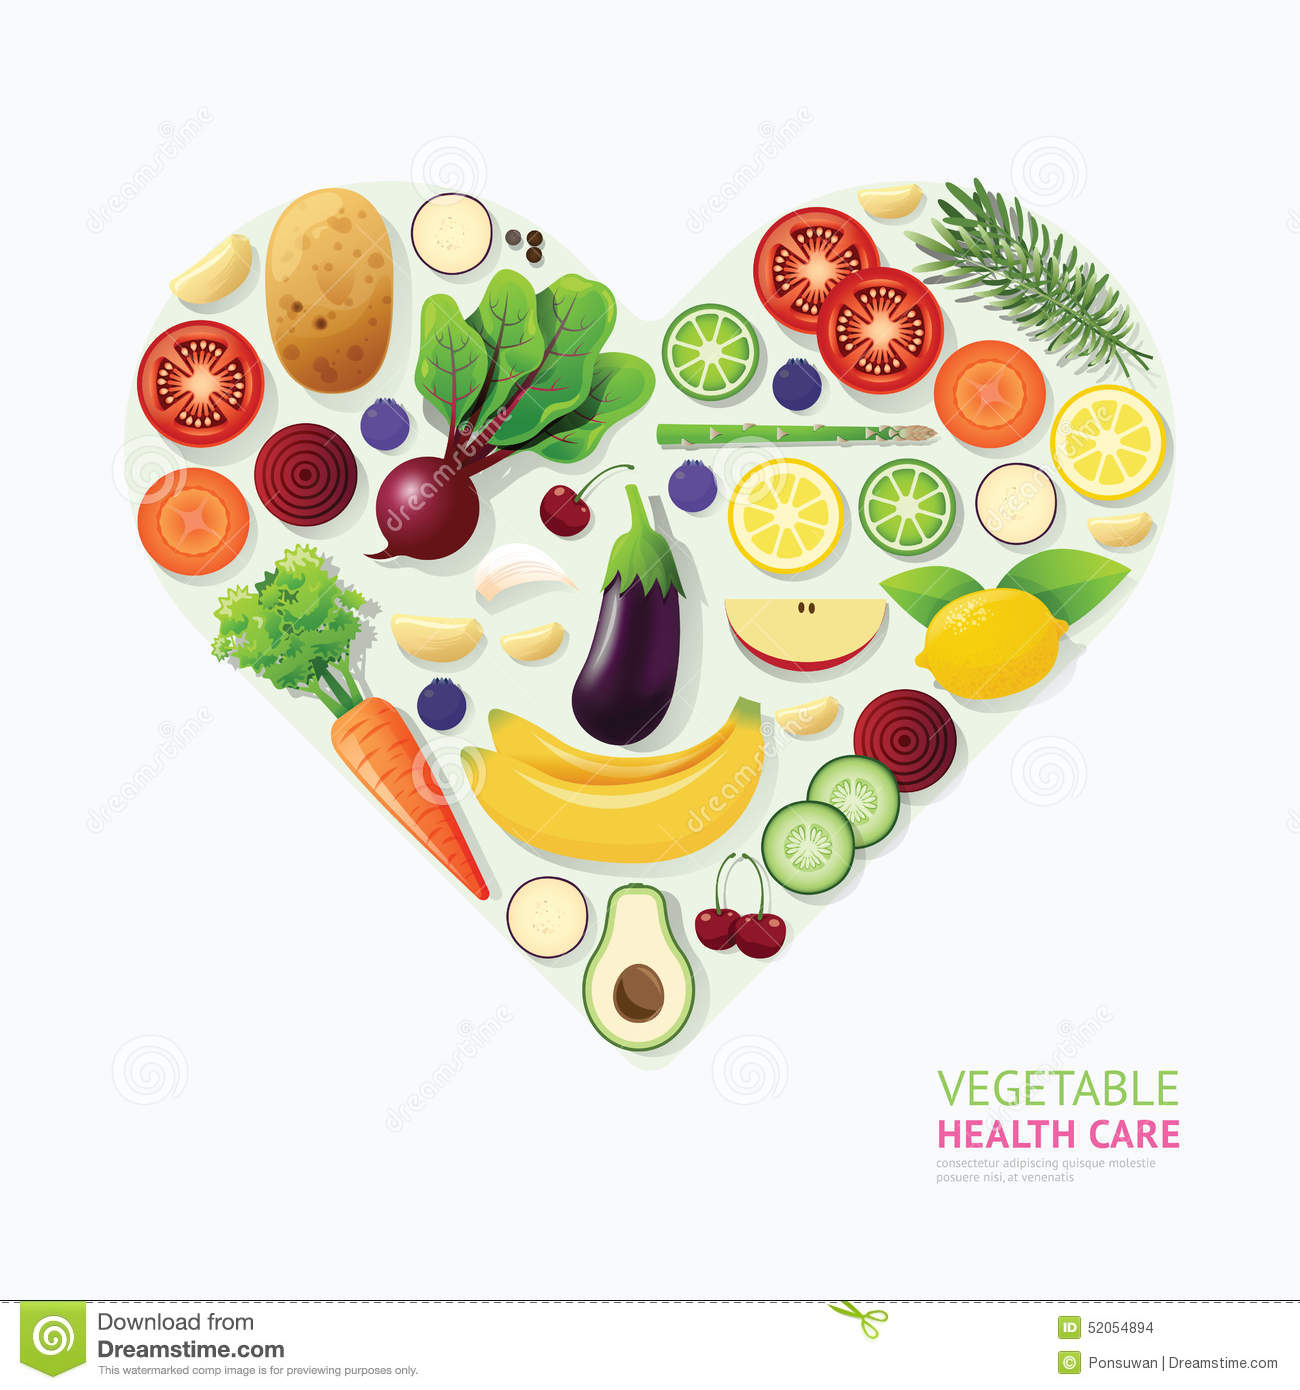 Health: Infographic Vegetable And Fruit Food Health Care Heart